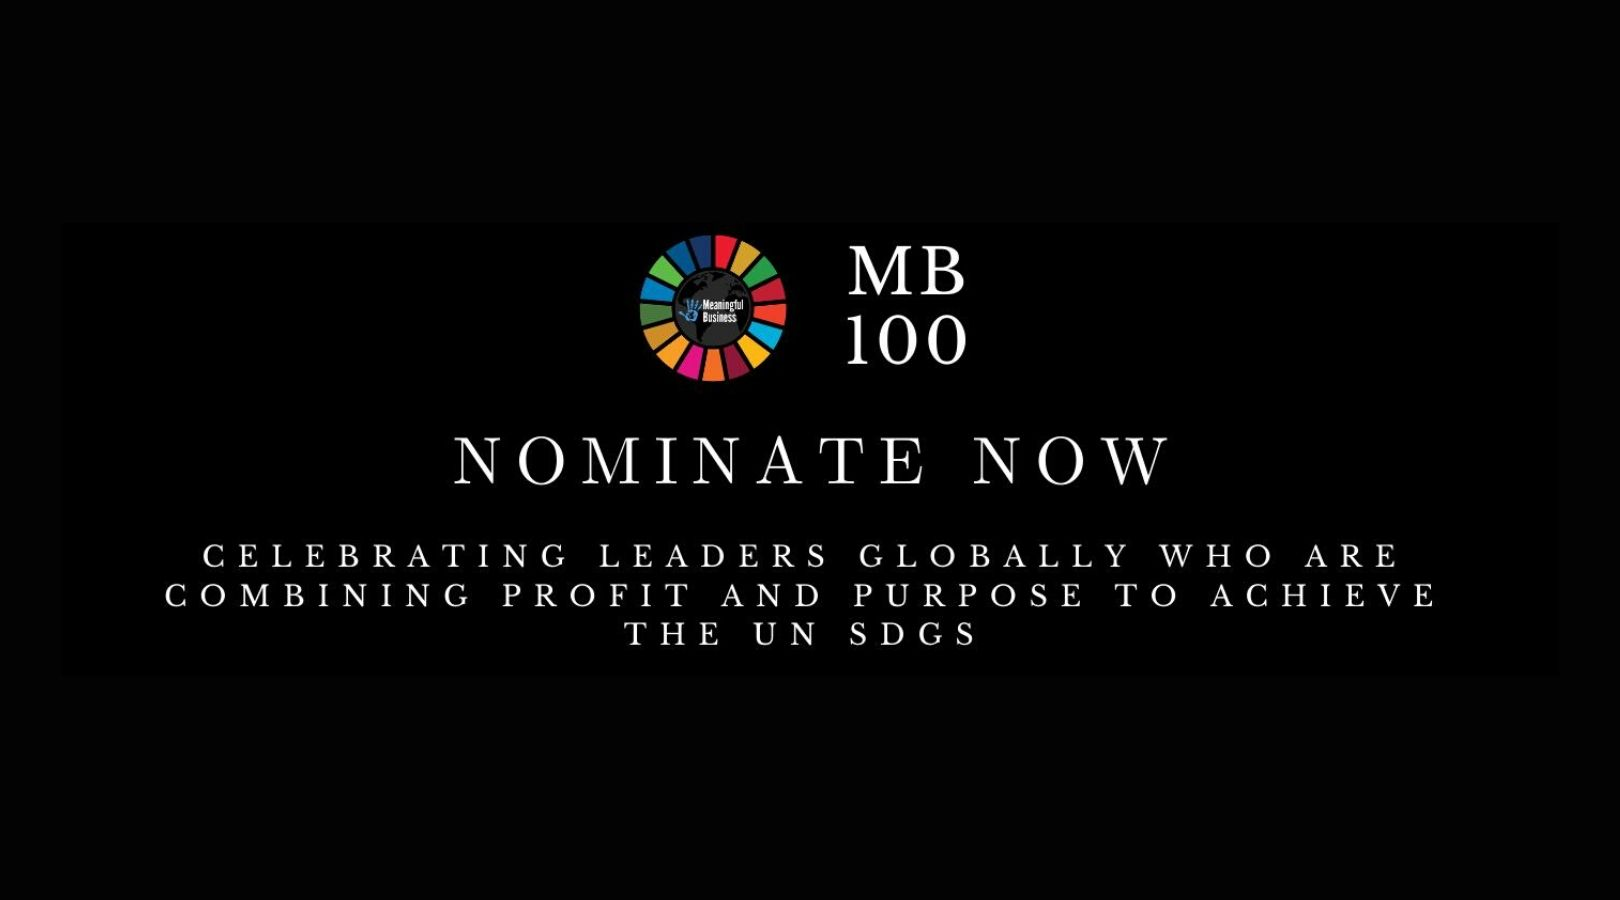 Nominations are open for the Meaningful Business 100 (MB100) Award 2020 for Leaders